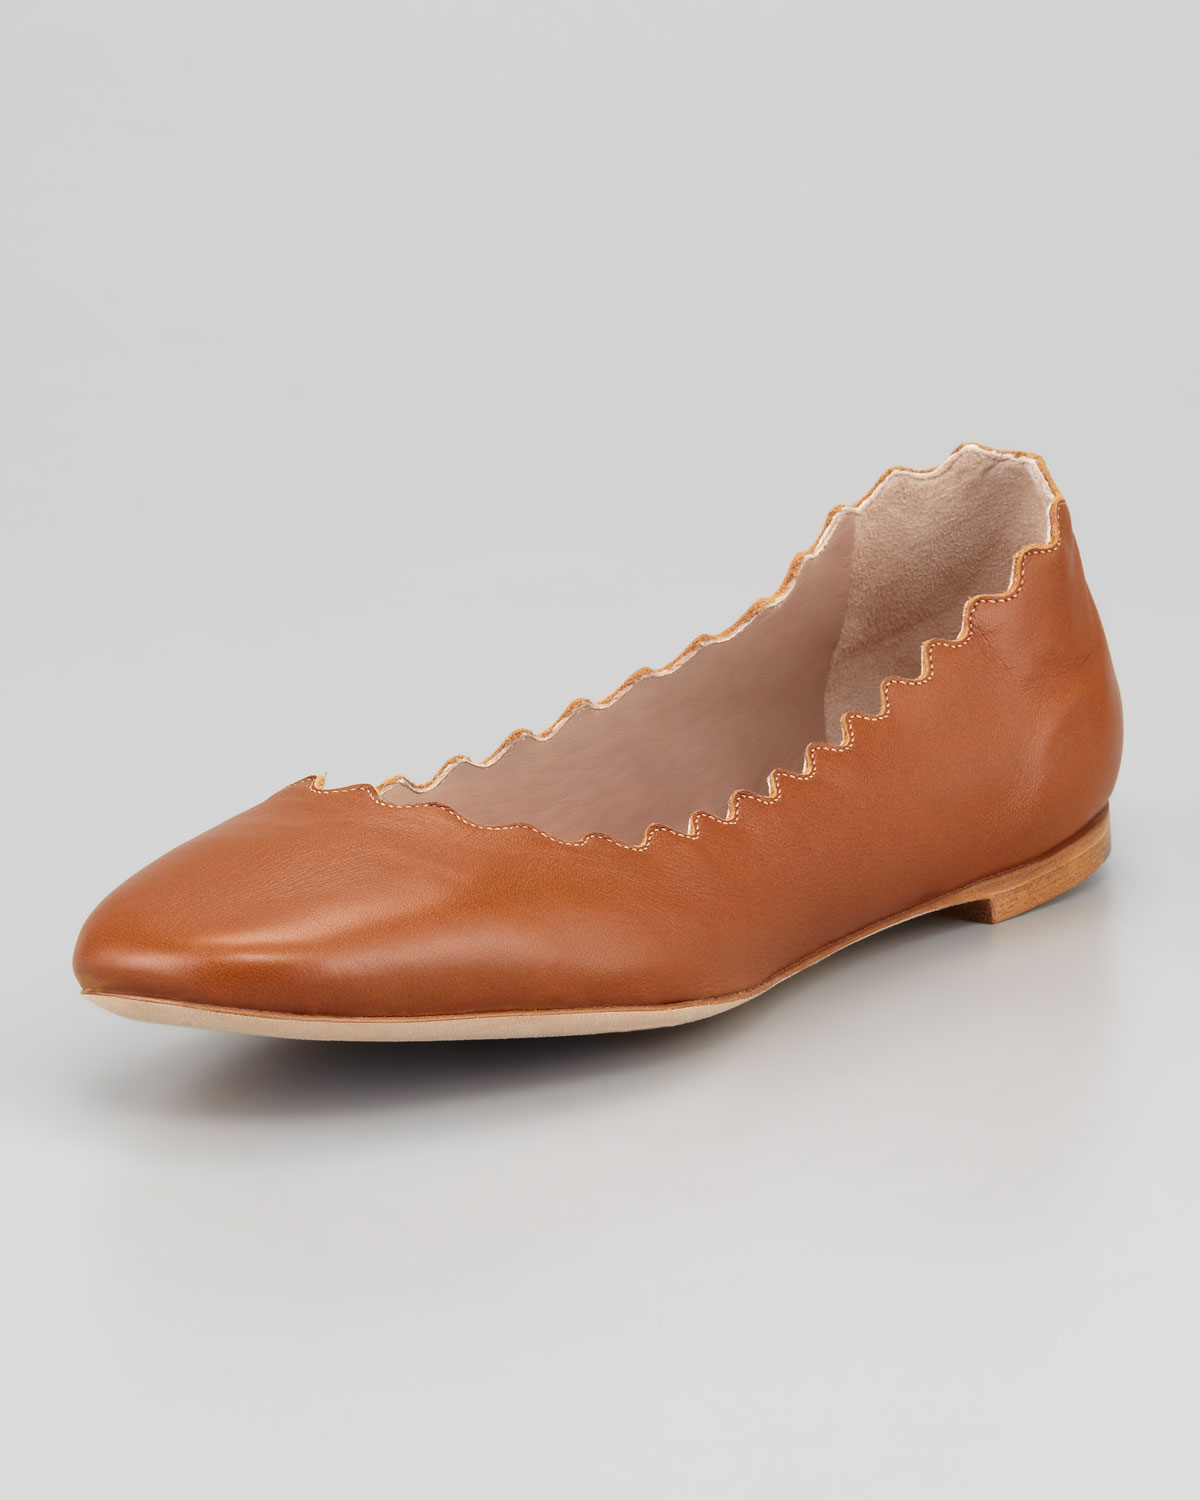 d9d13a097 Chloé Scalloped Leather Ballerina Flat Tan in Brown - Lyst